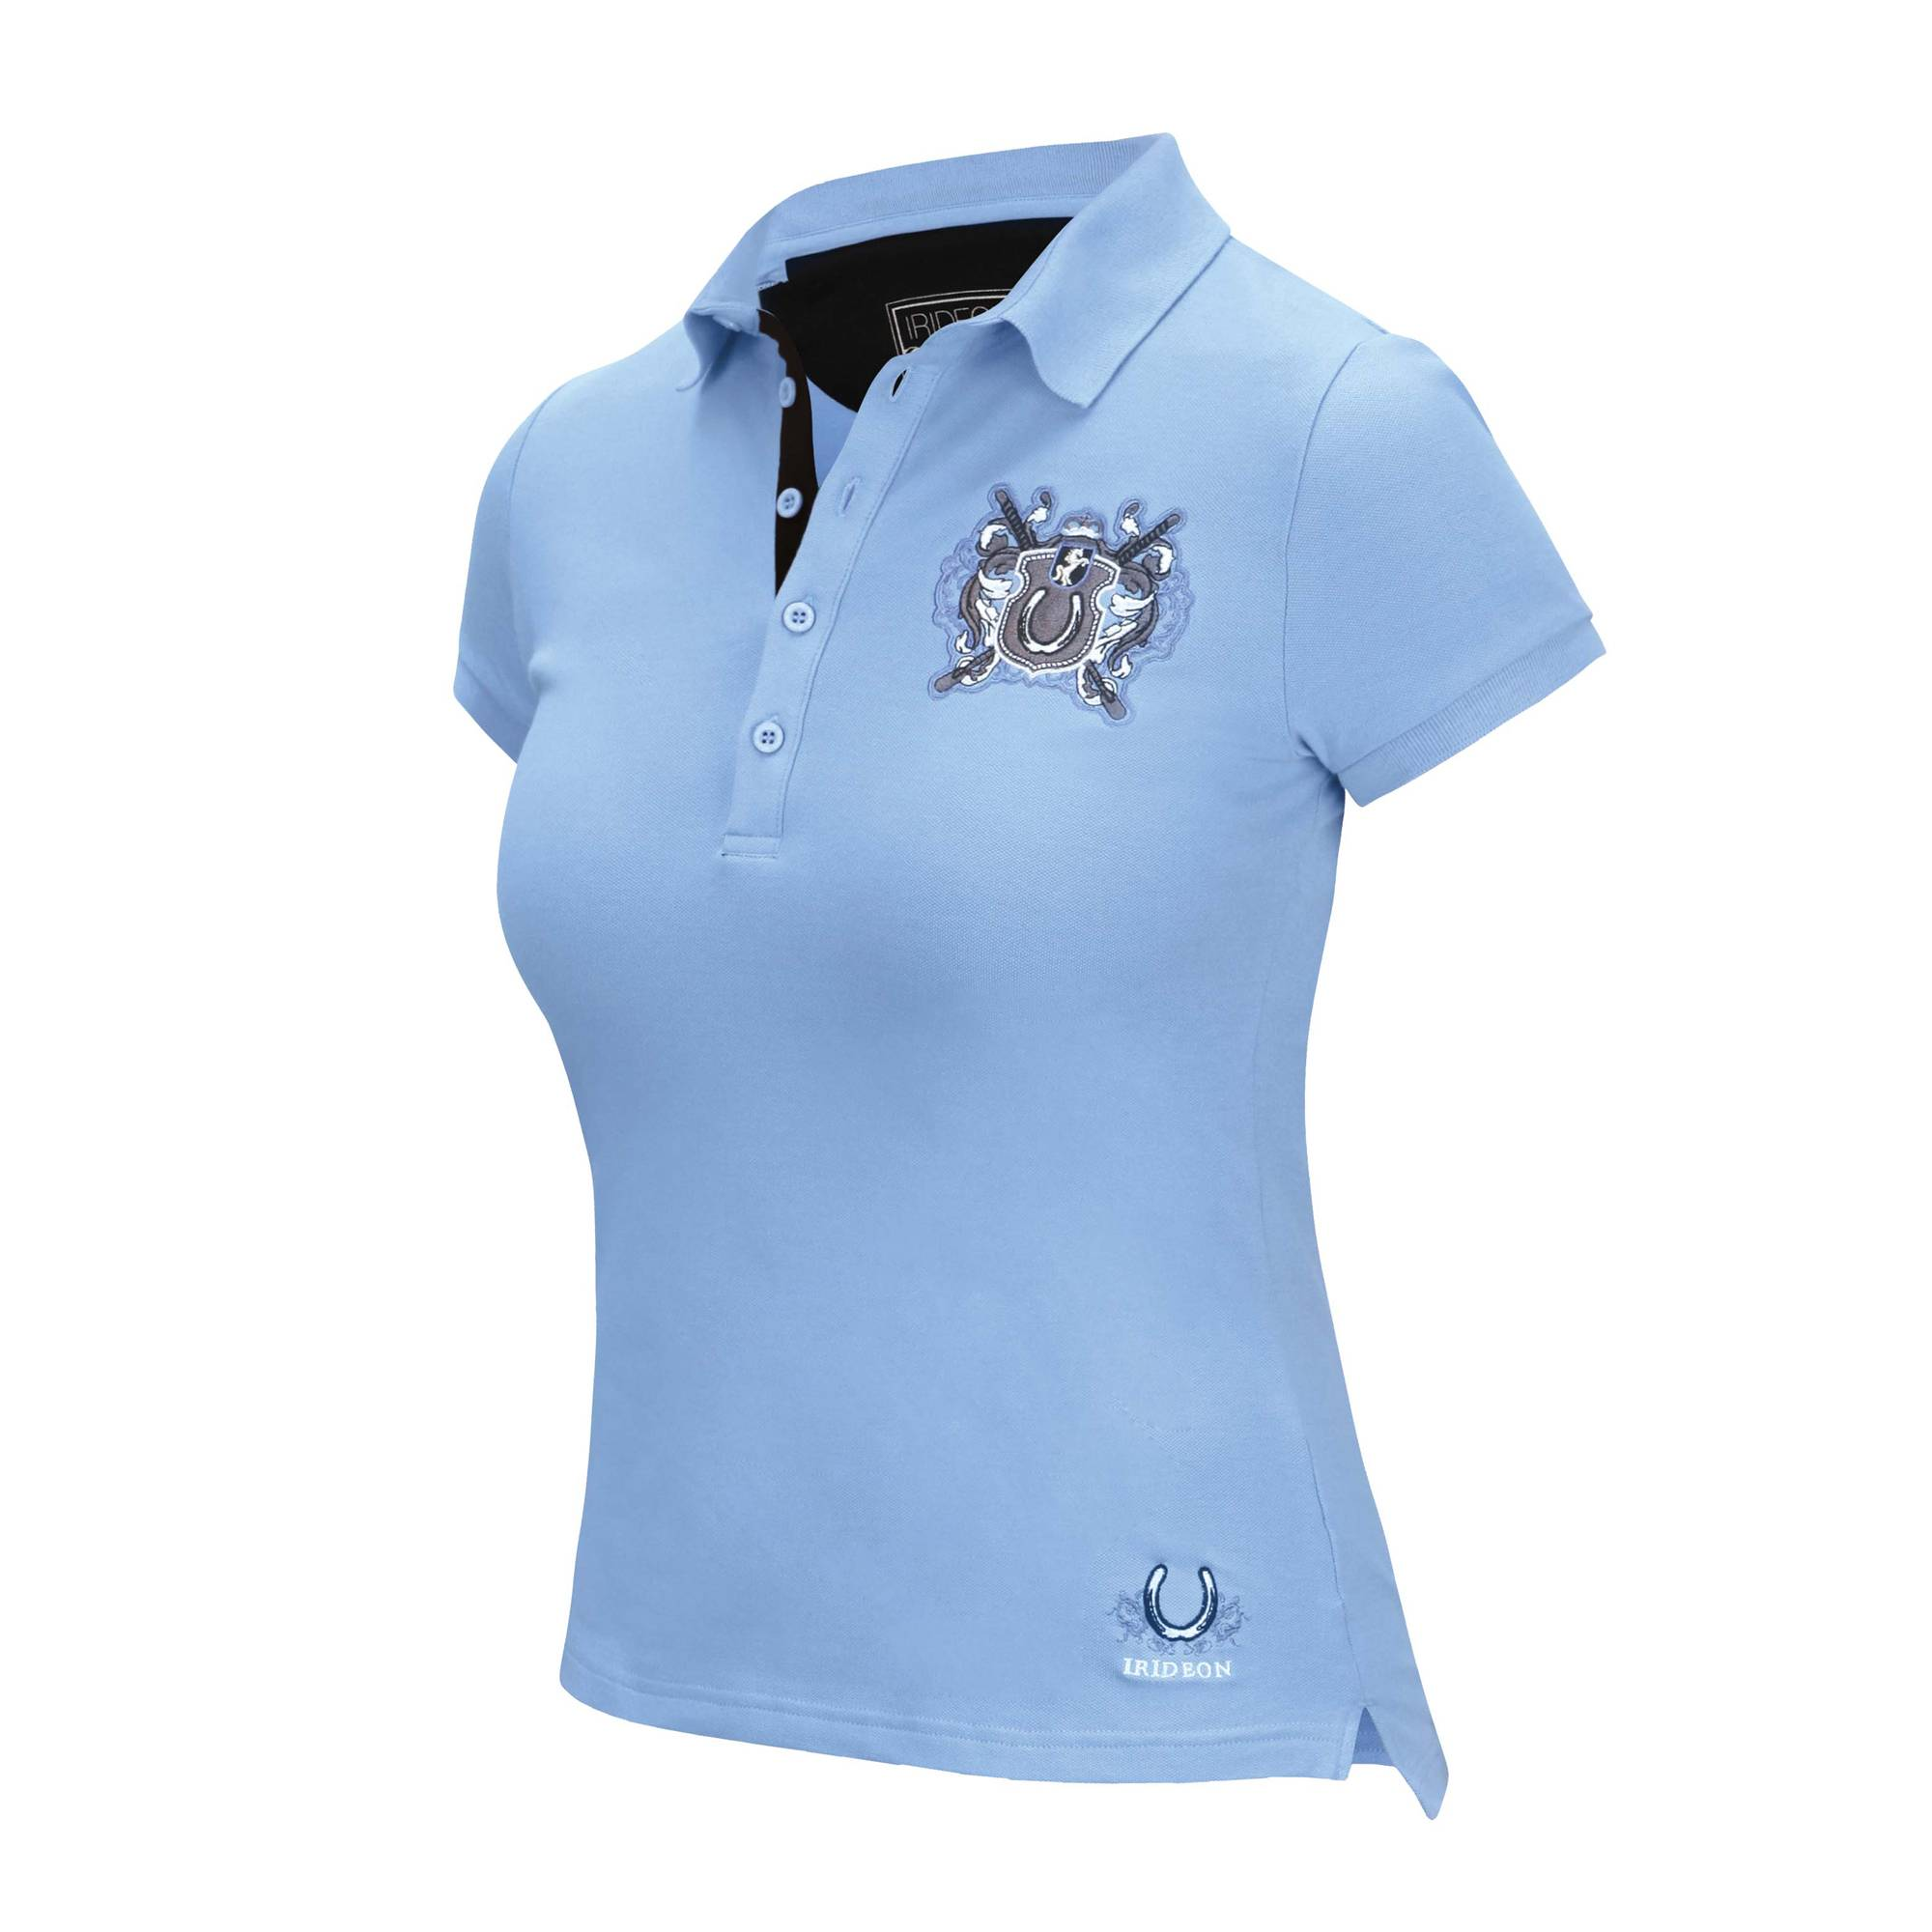 Irideon Kids Royal Crest Polo